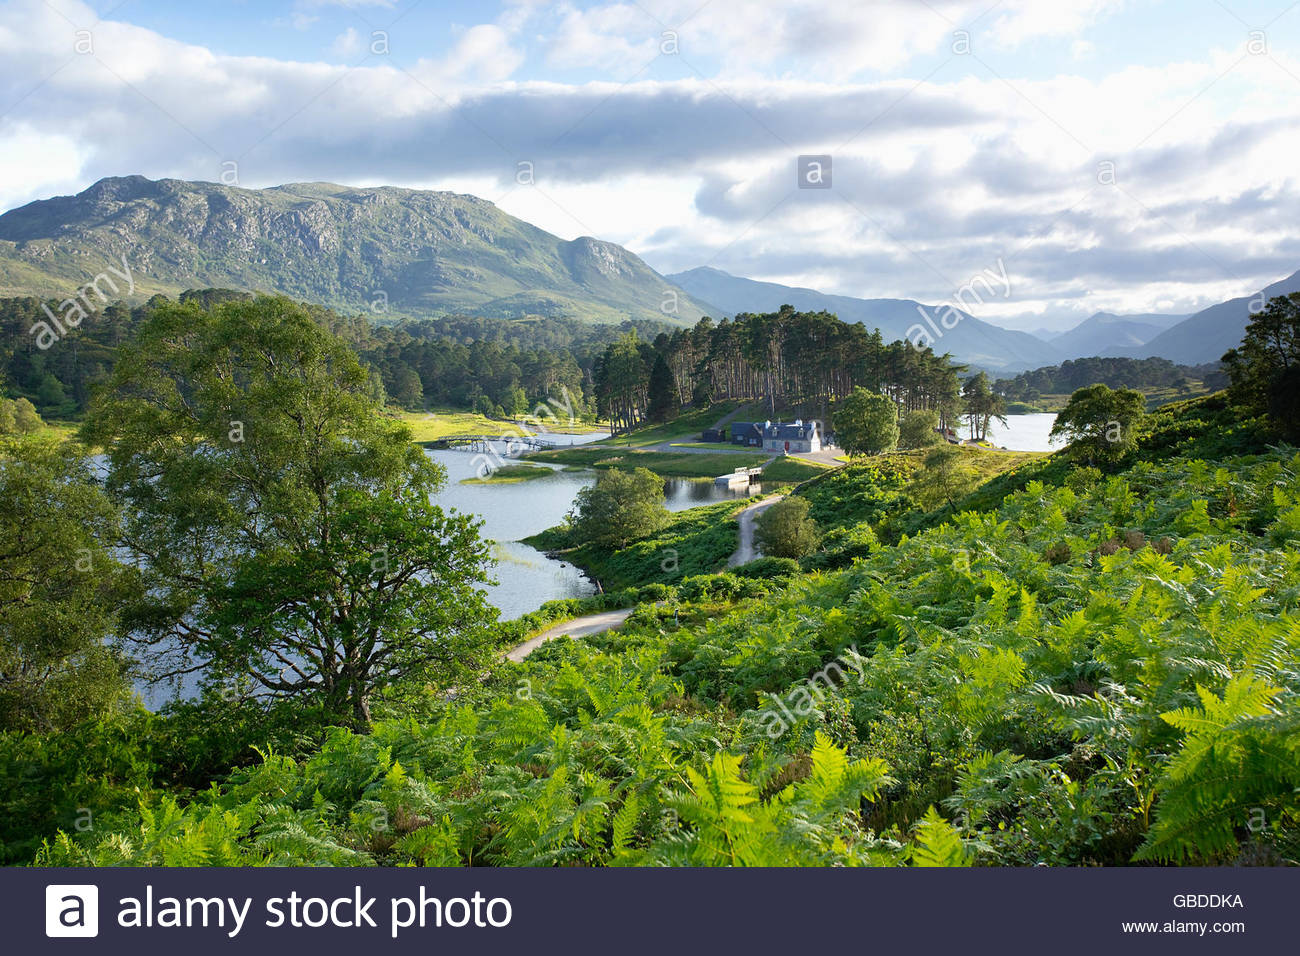 A cottage by the side of Loch Affric in Glen Affric, Highlands of Scotland. - Stock Image